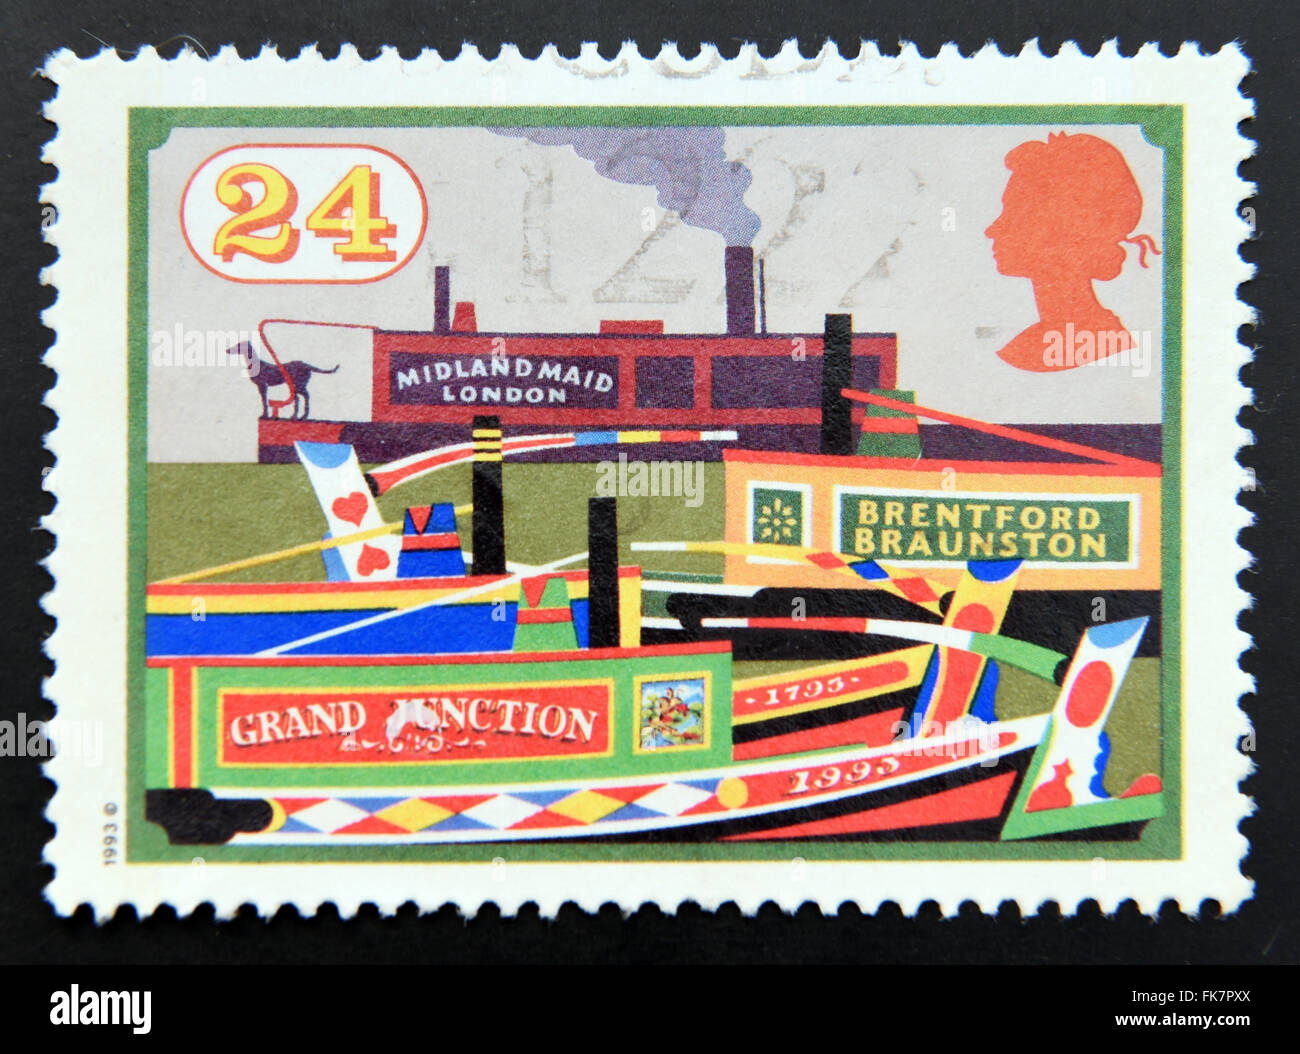 UNITED KINGDOM - 1993: A stamp printed in Great Britain dedicated to Inland Waterways, shows Midland Maid and other - Stock Image